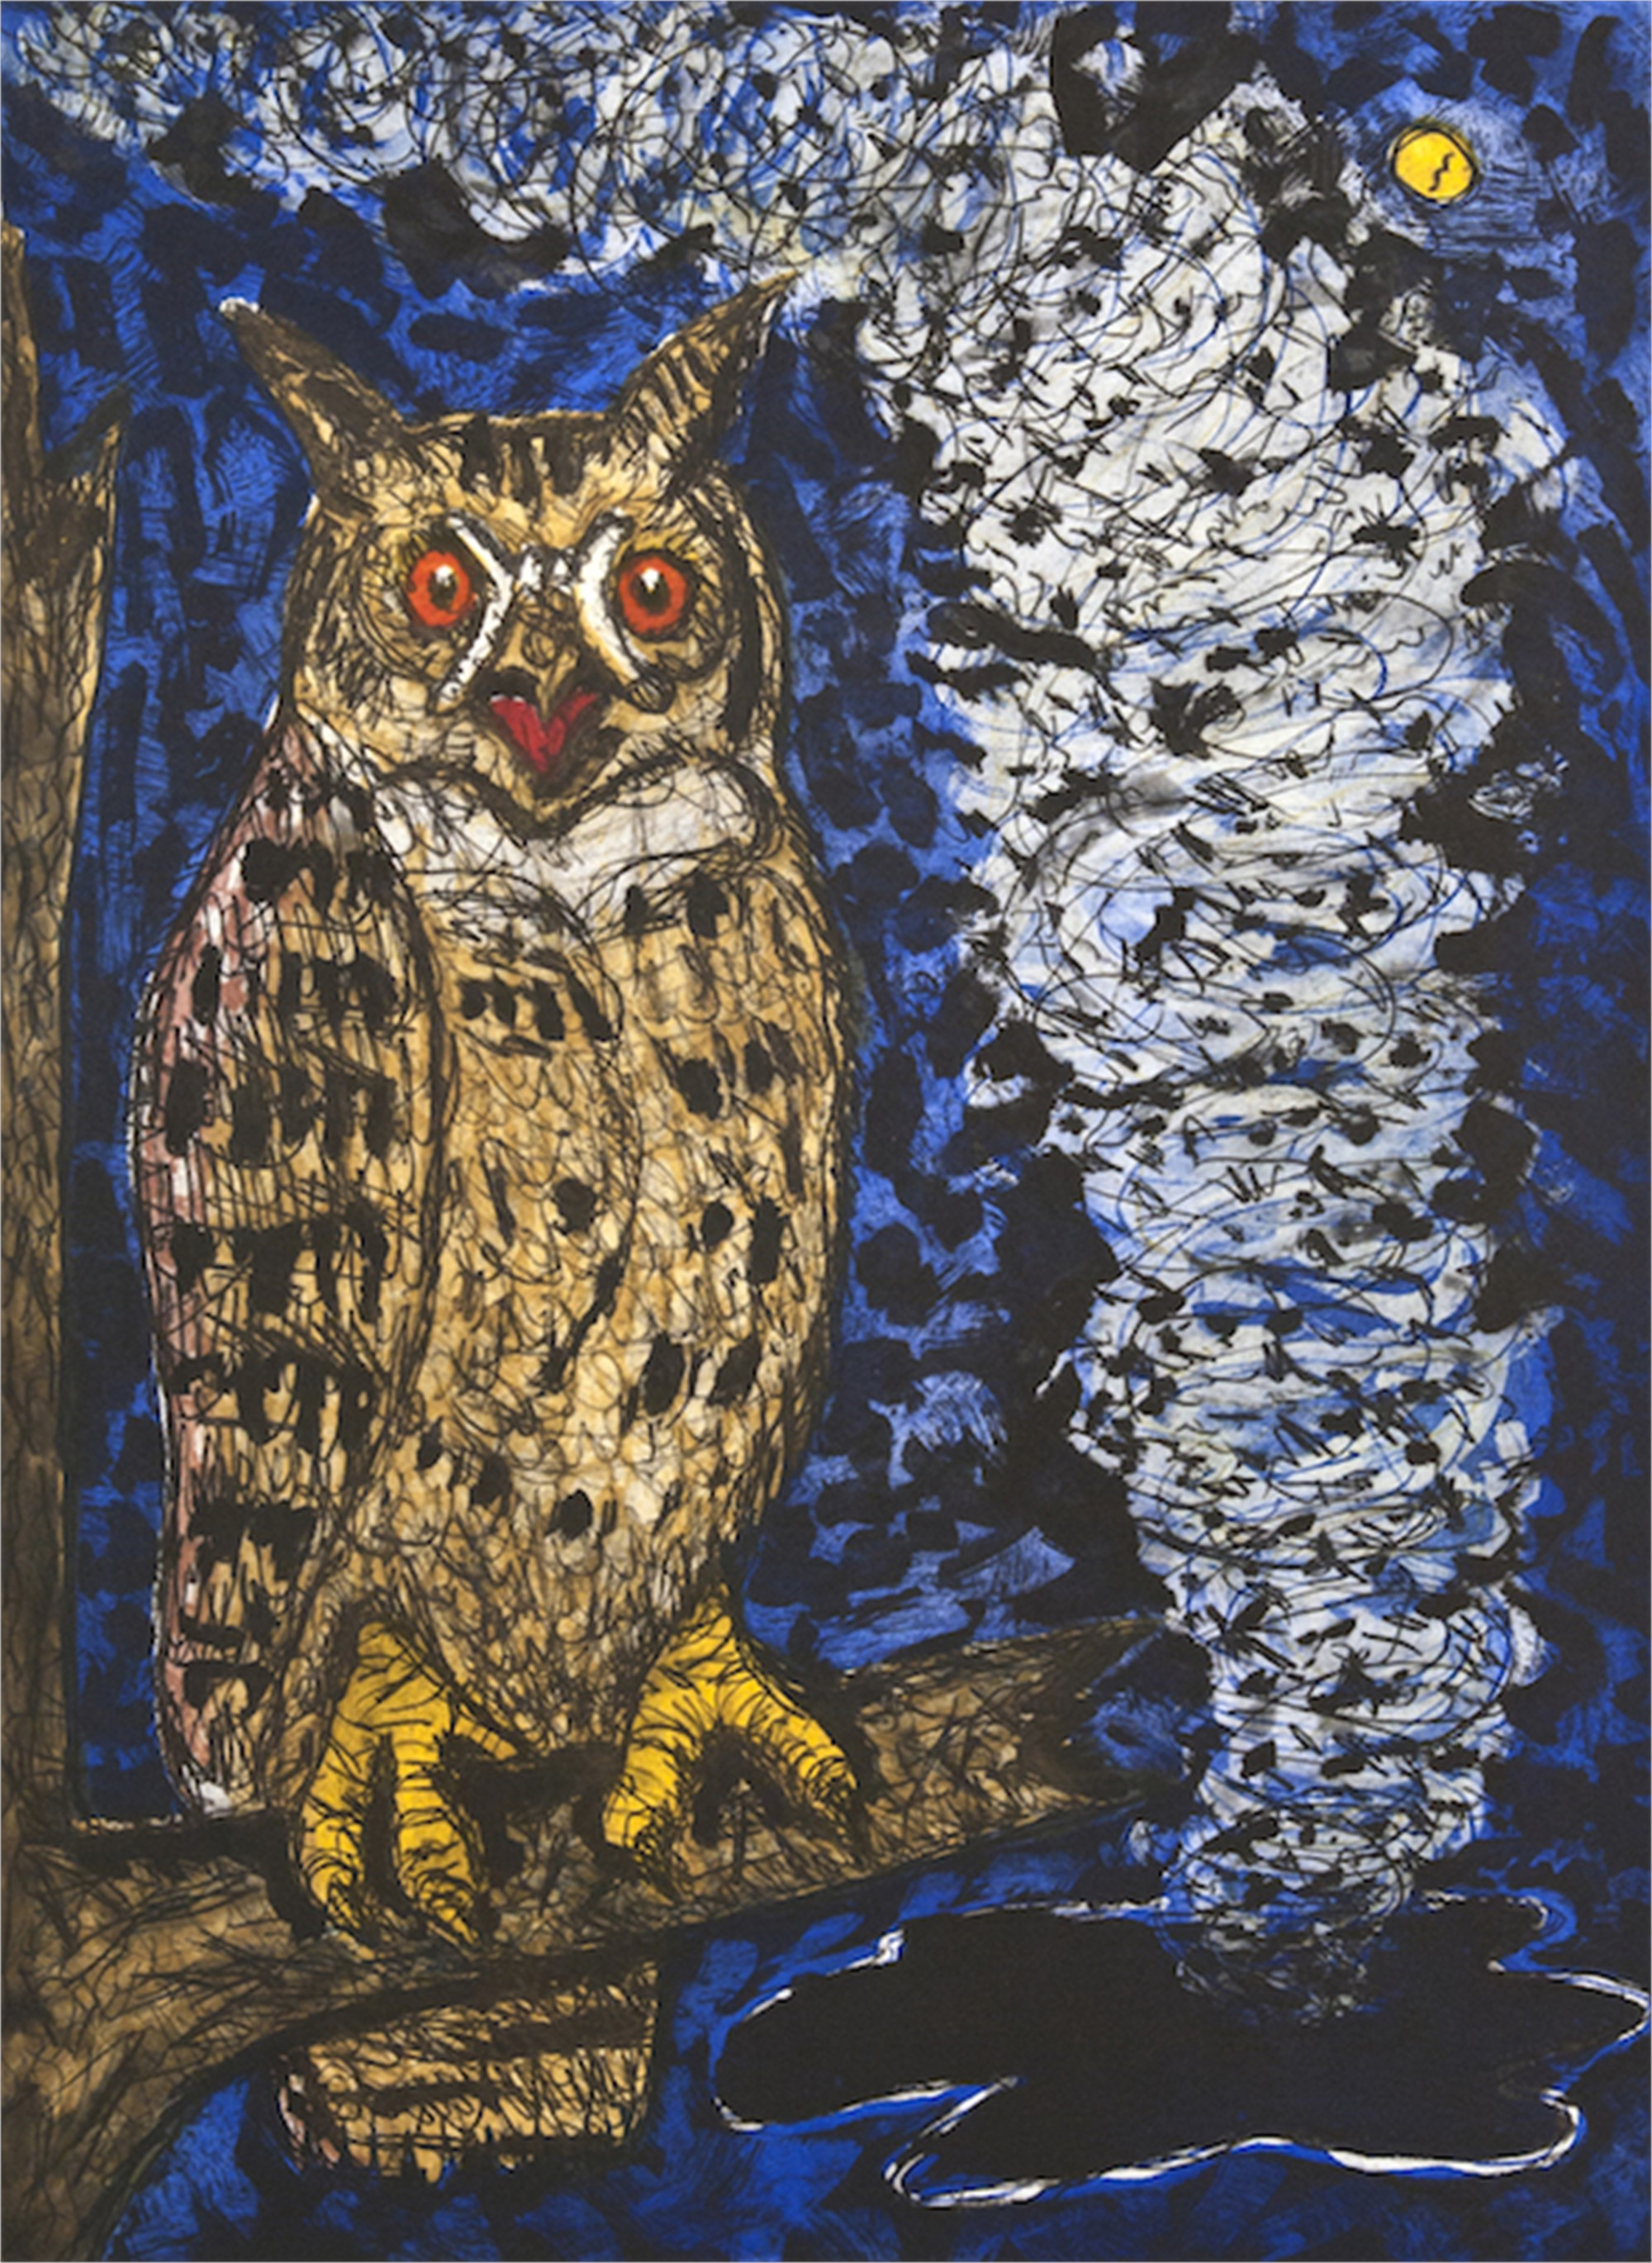 Horned Owl by Frank X. Tolbert 2